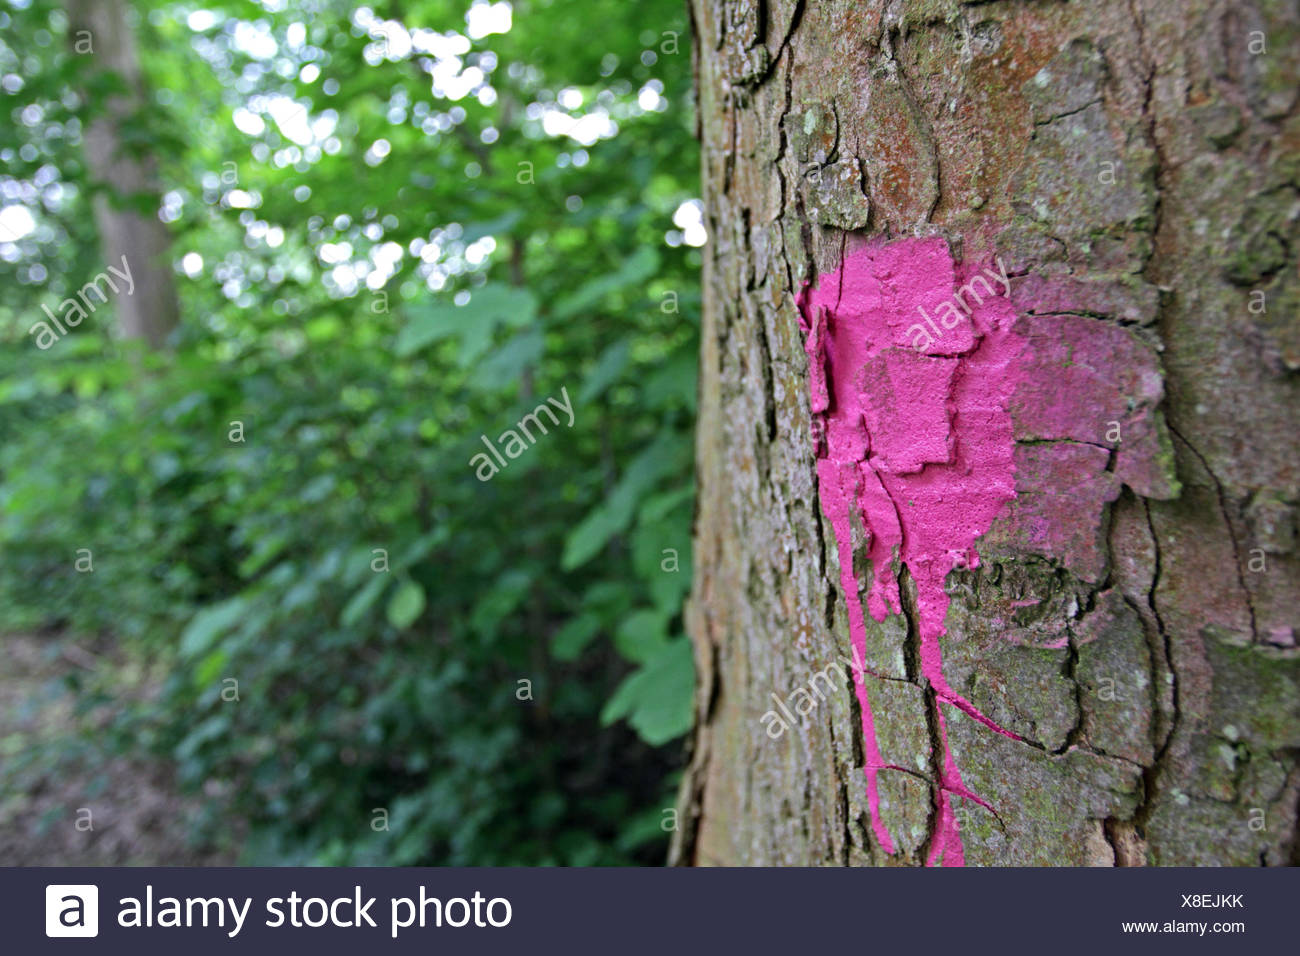 flagged tree in a park, Germany Stock Photo